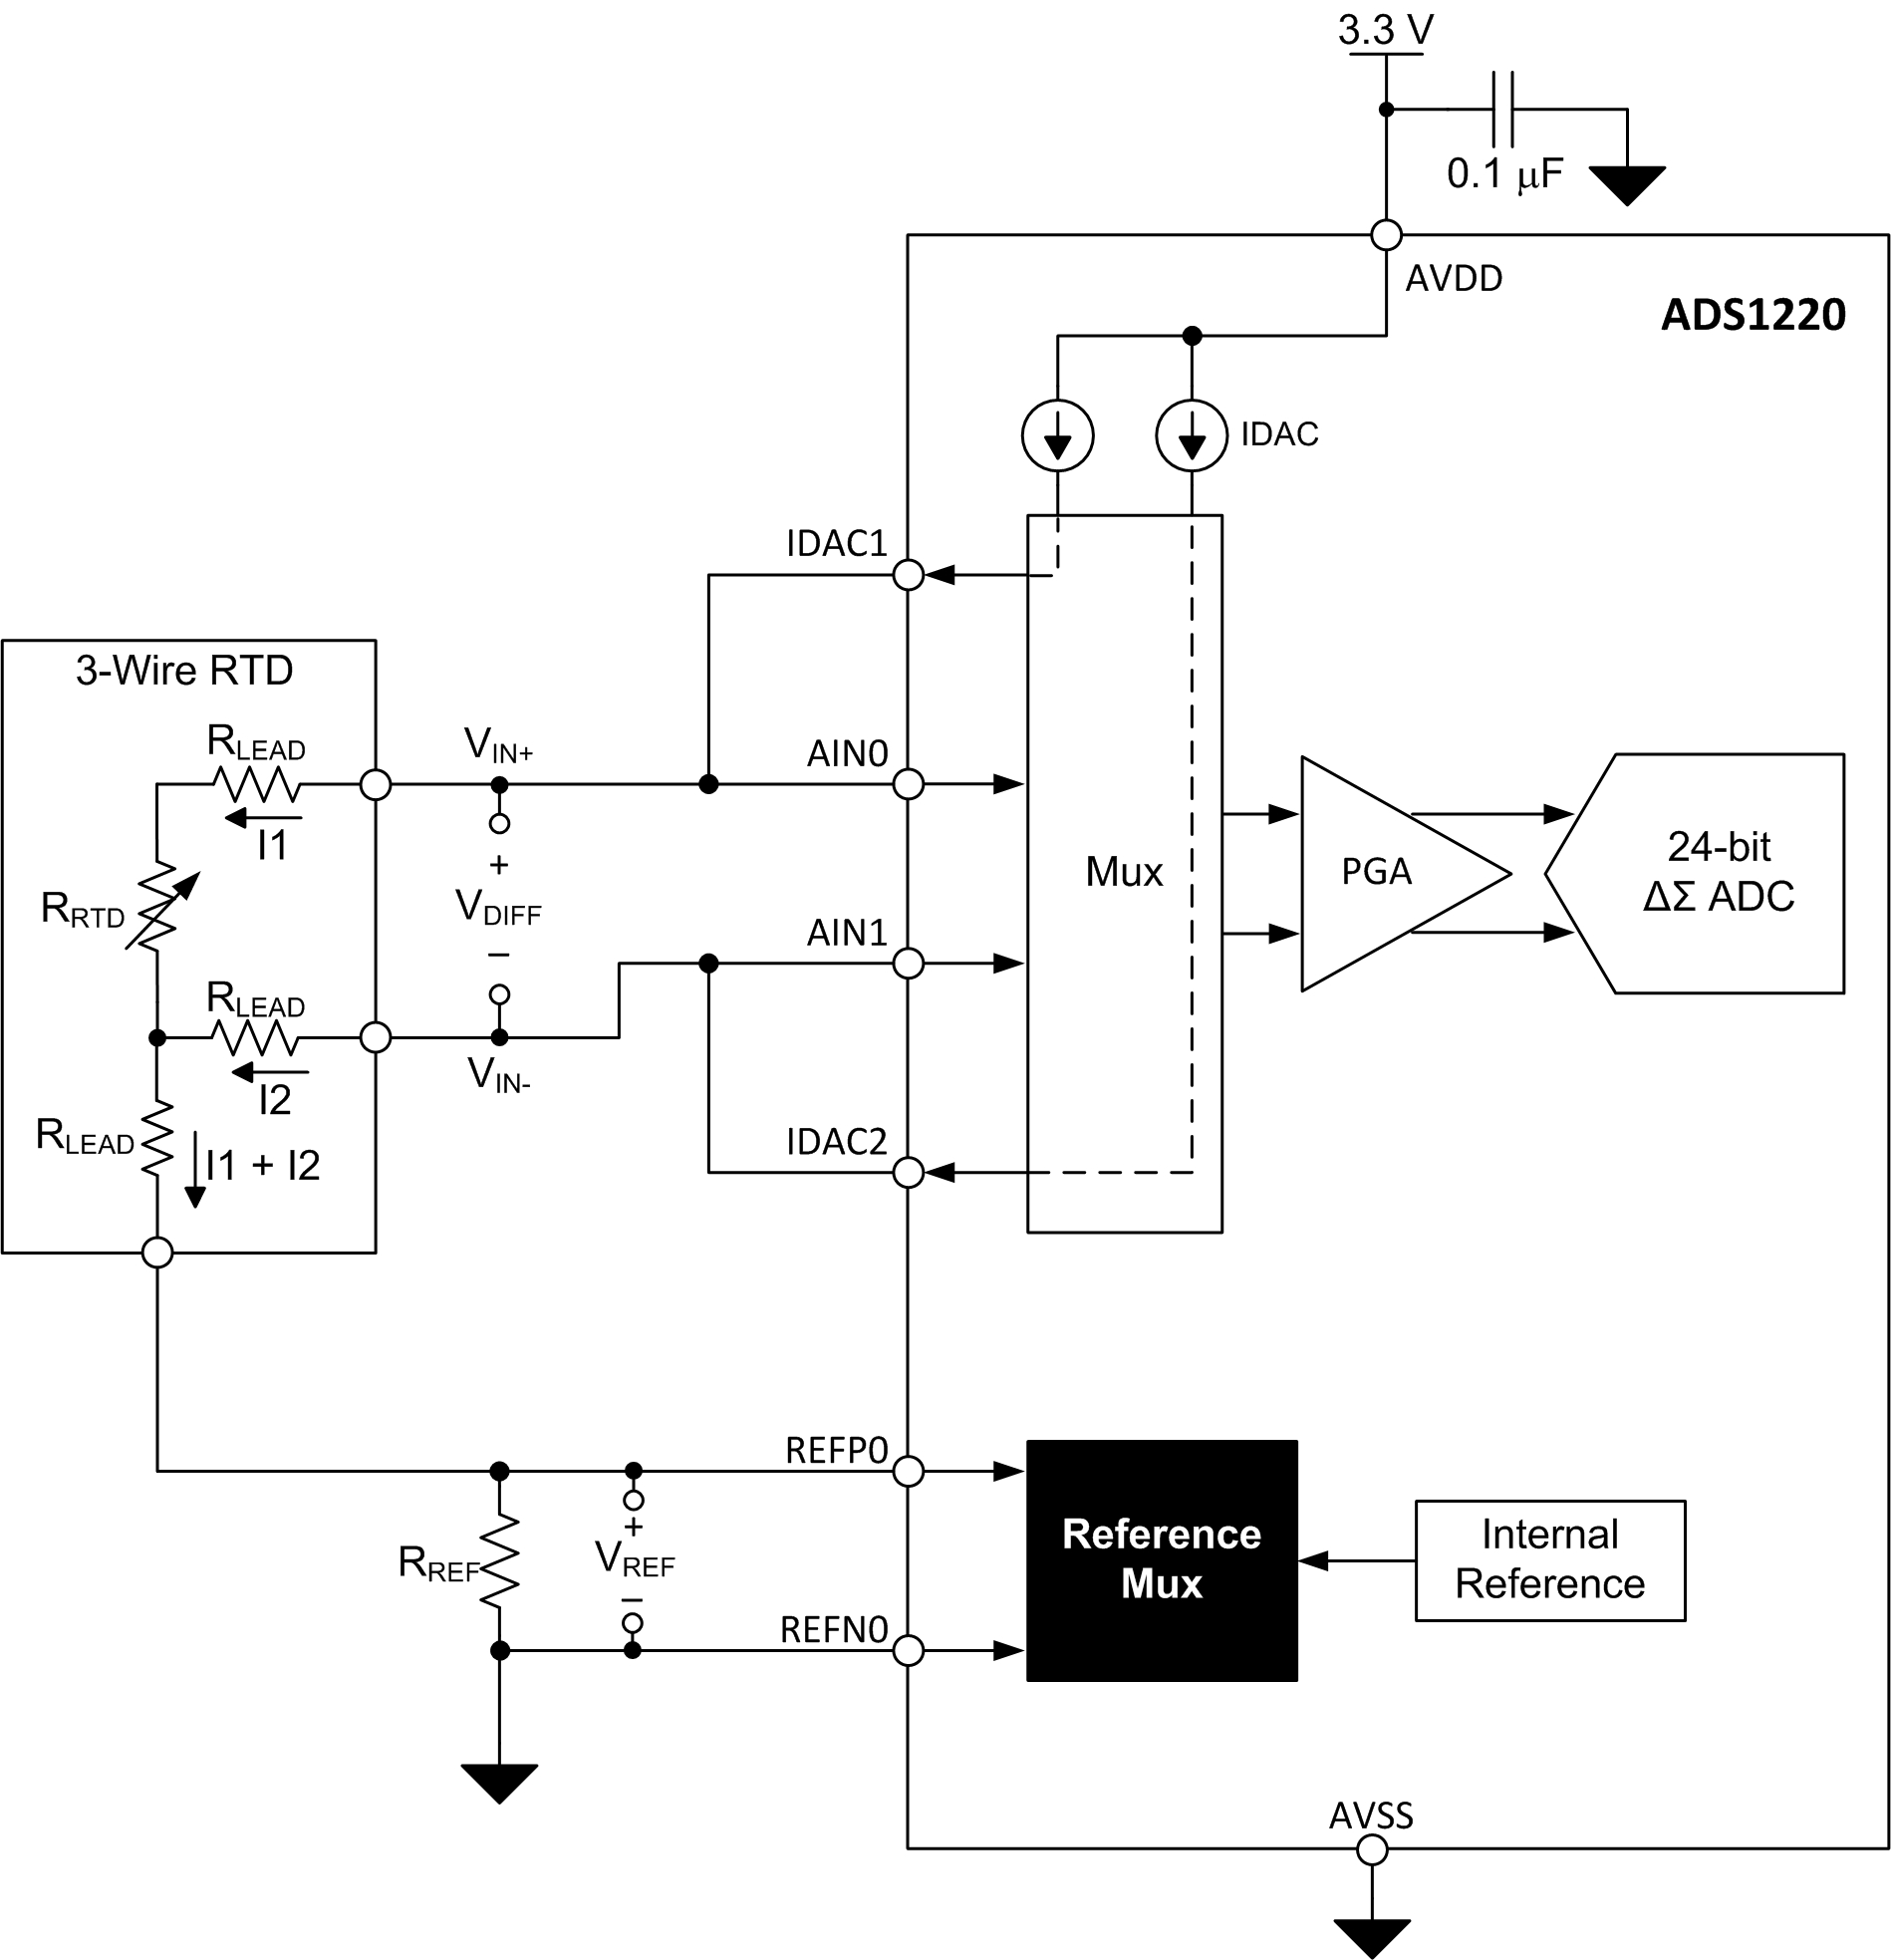 rtd circuit diagram the wiring diagram rtd circuit diagram vidim wiring diagram circuit diagram